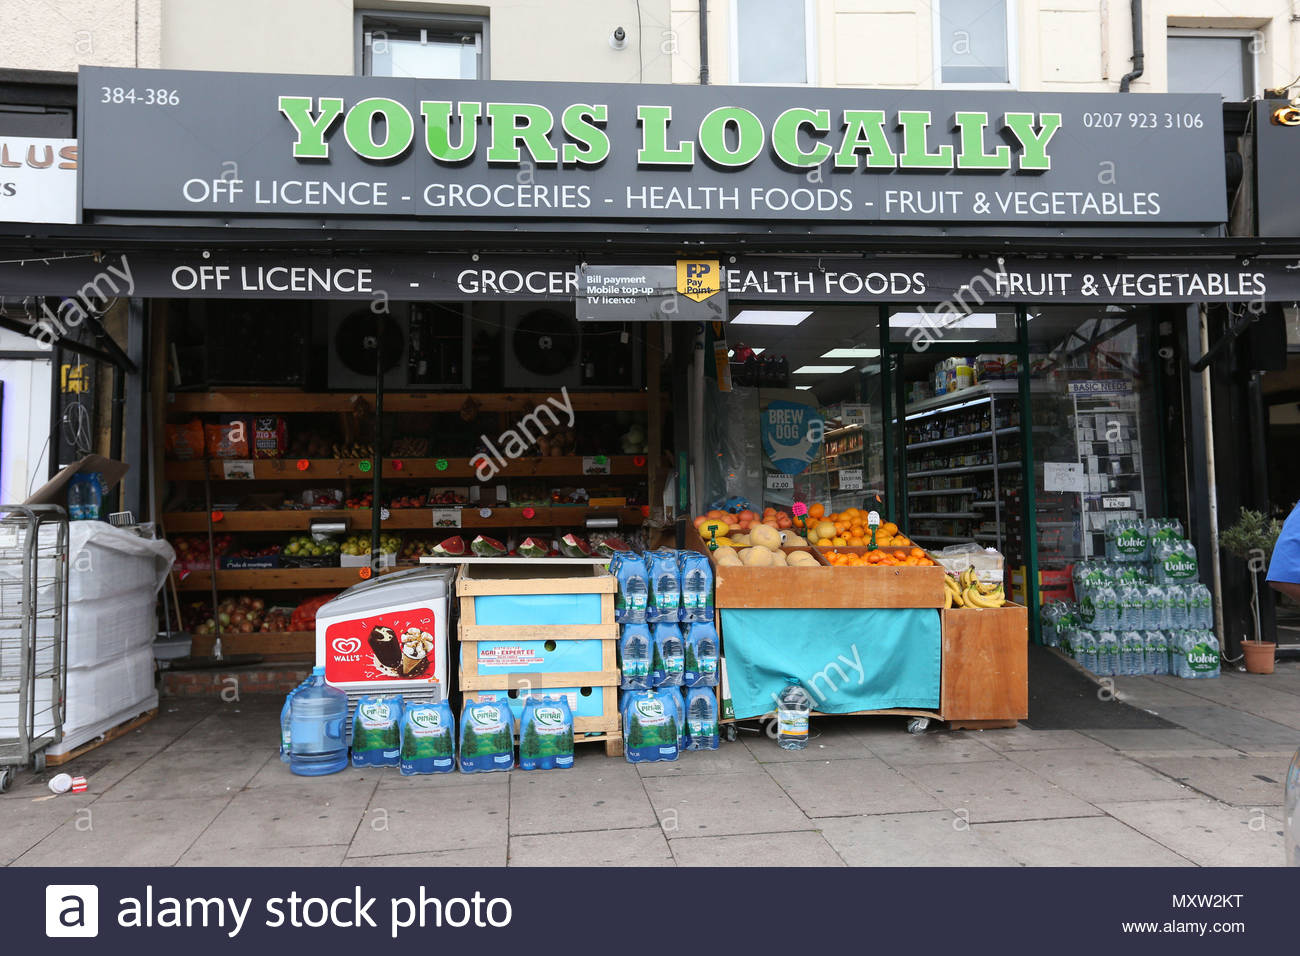 File photo dated 23/07/17 of a general view of the Yours Locally shop in Kingsland Road, Dalston, east London. The police officer who restrained Rashan Charles shortly before his death has said he probably should have called for an ambulance sooner. - Stock Image